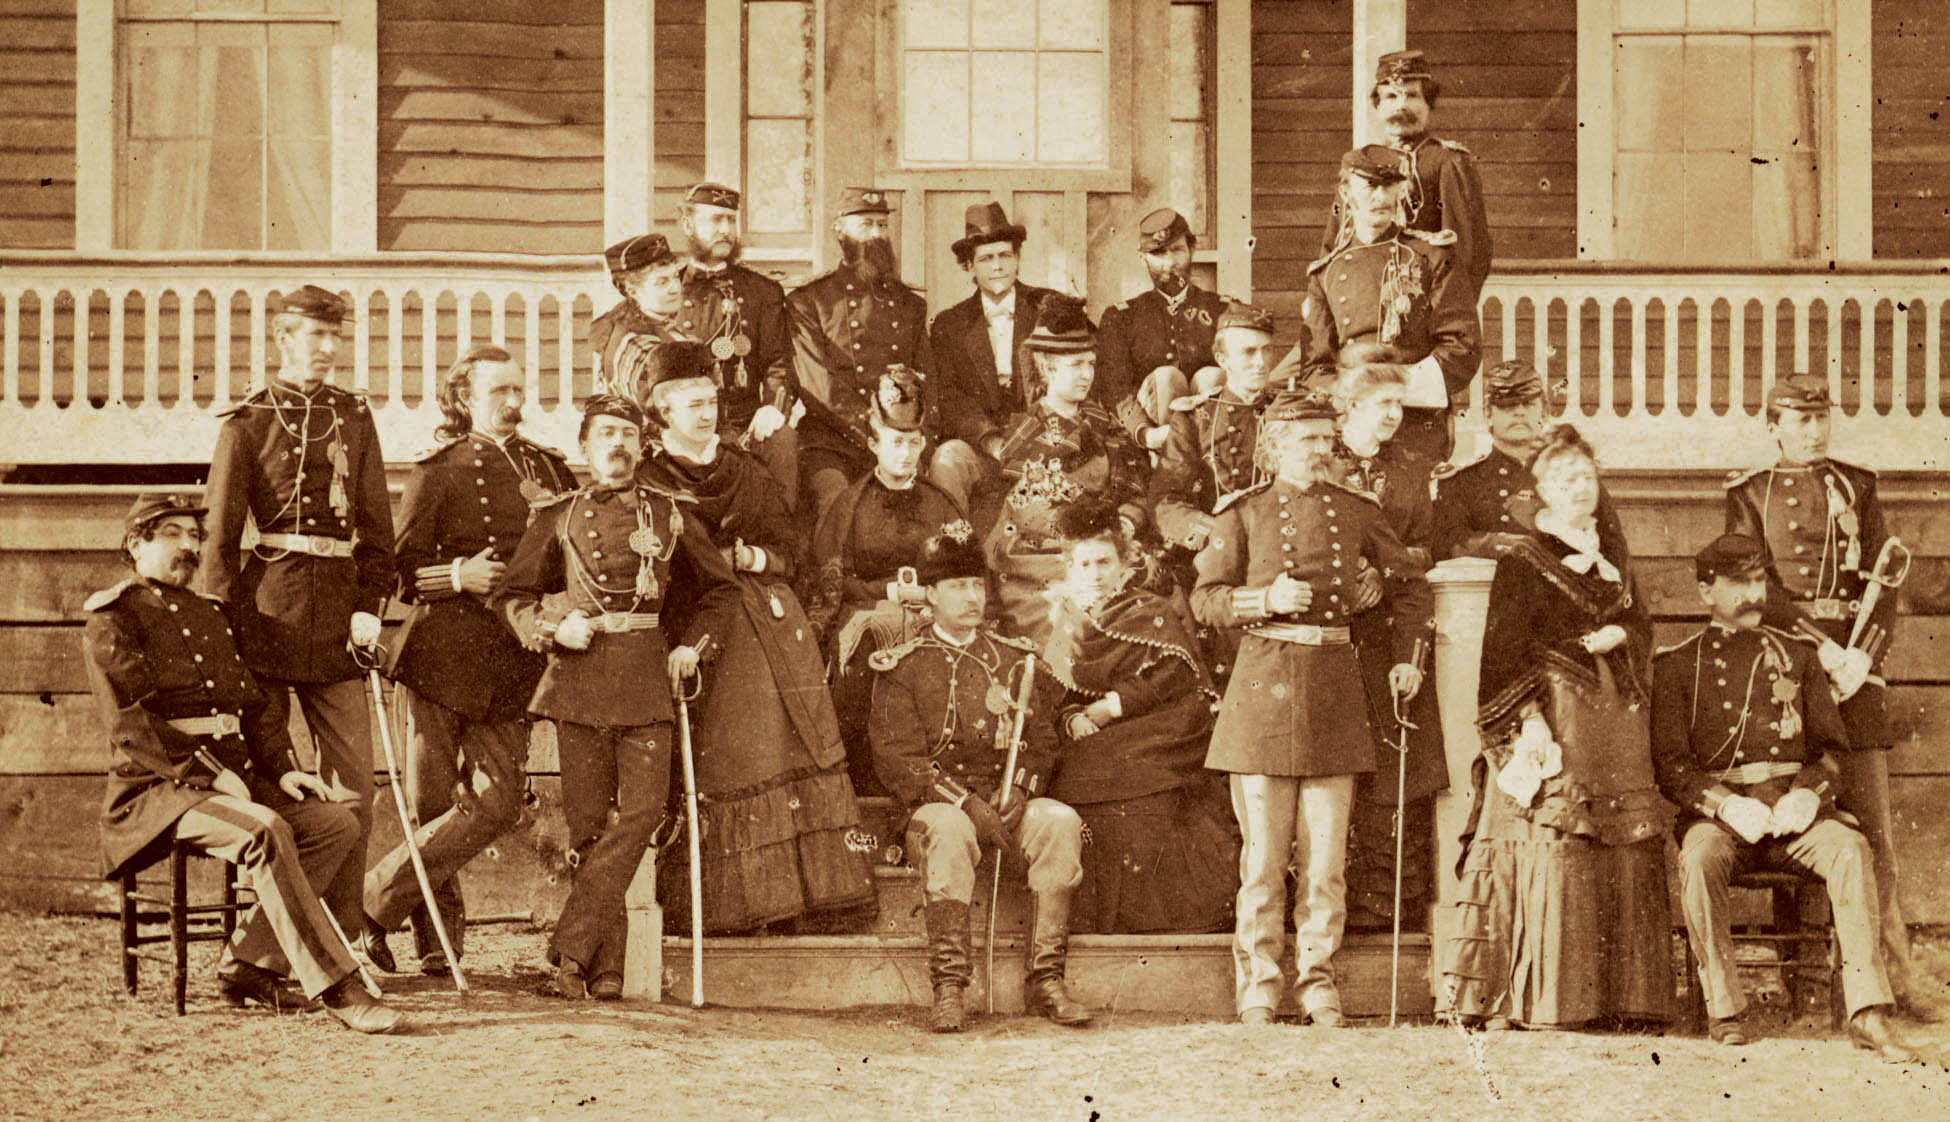 Group photo at Fort Abraham Lincoln